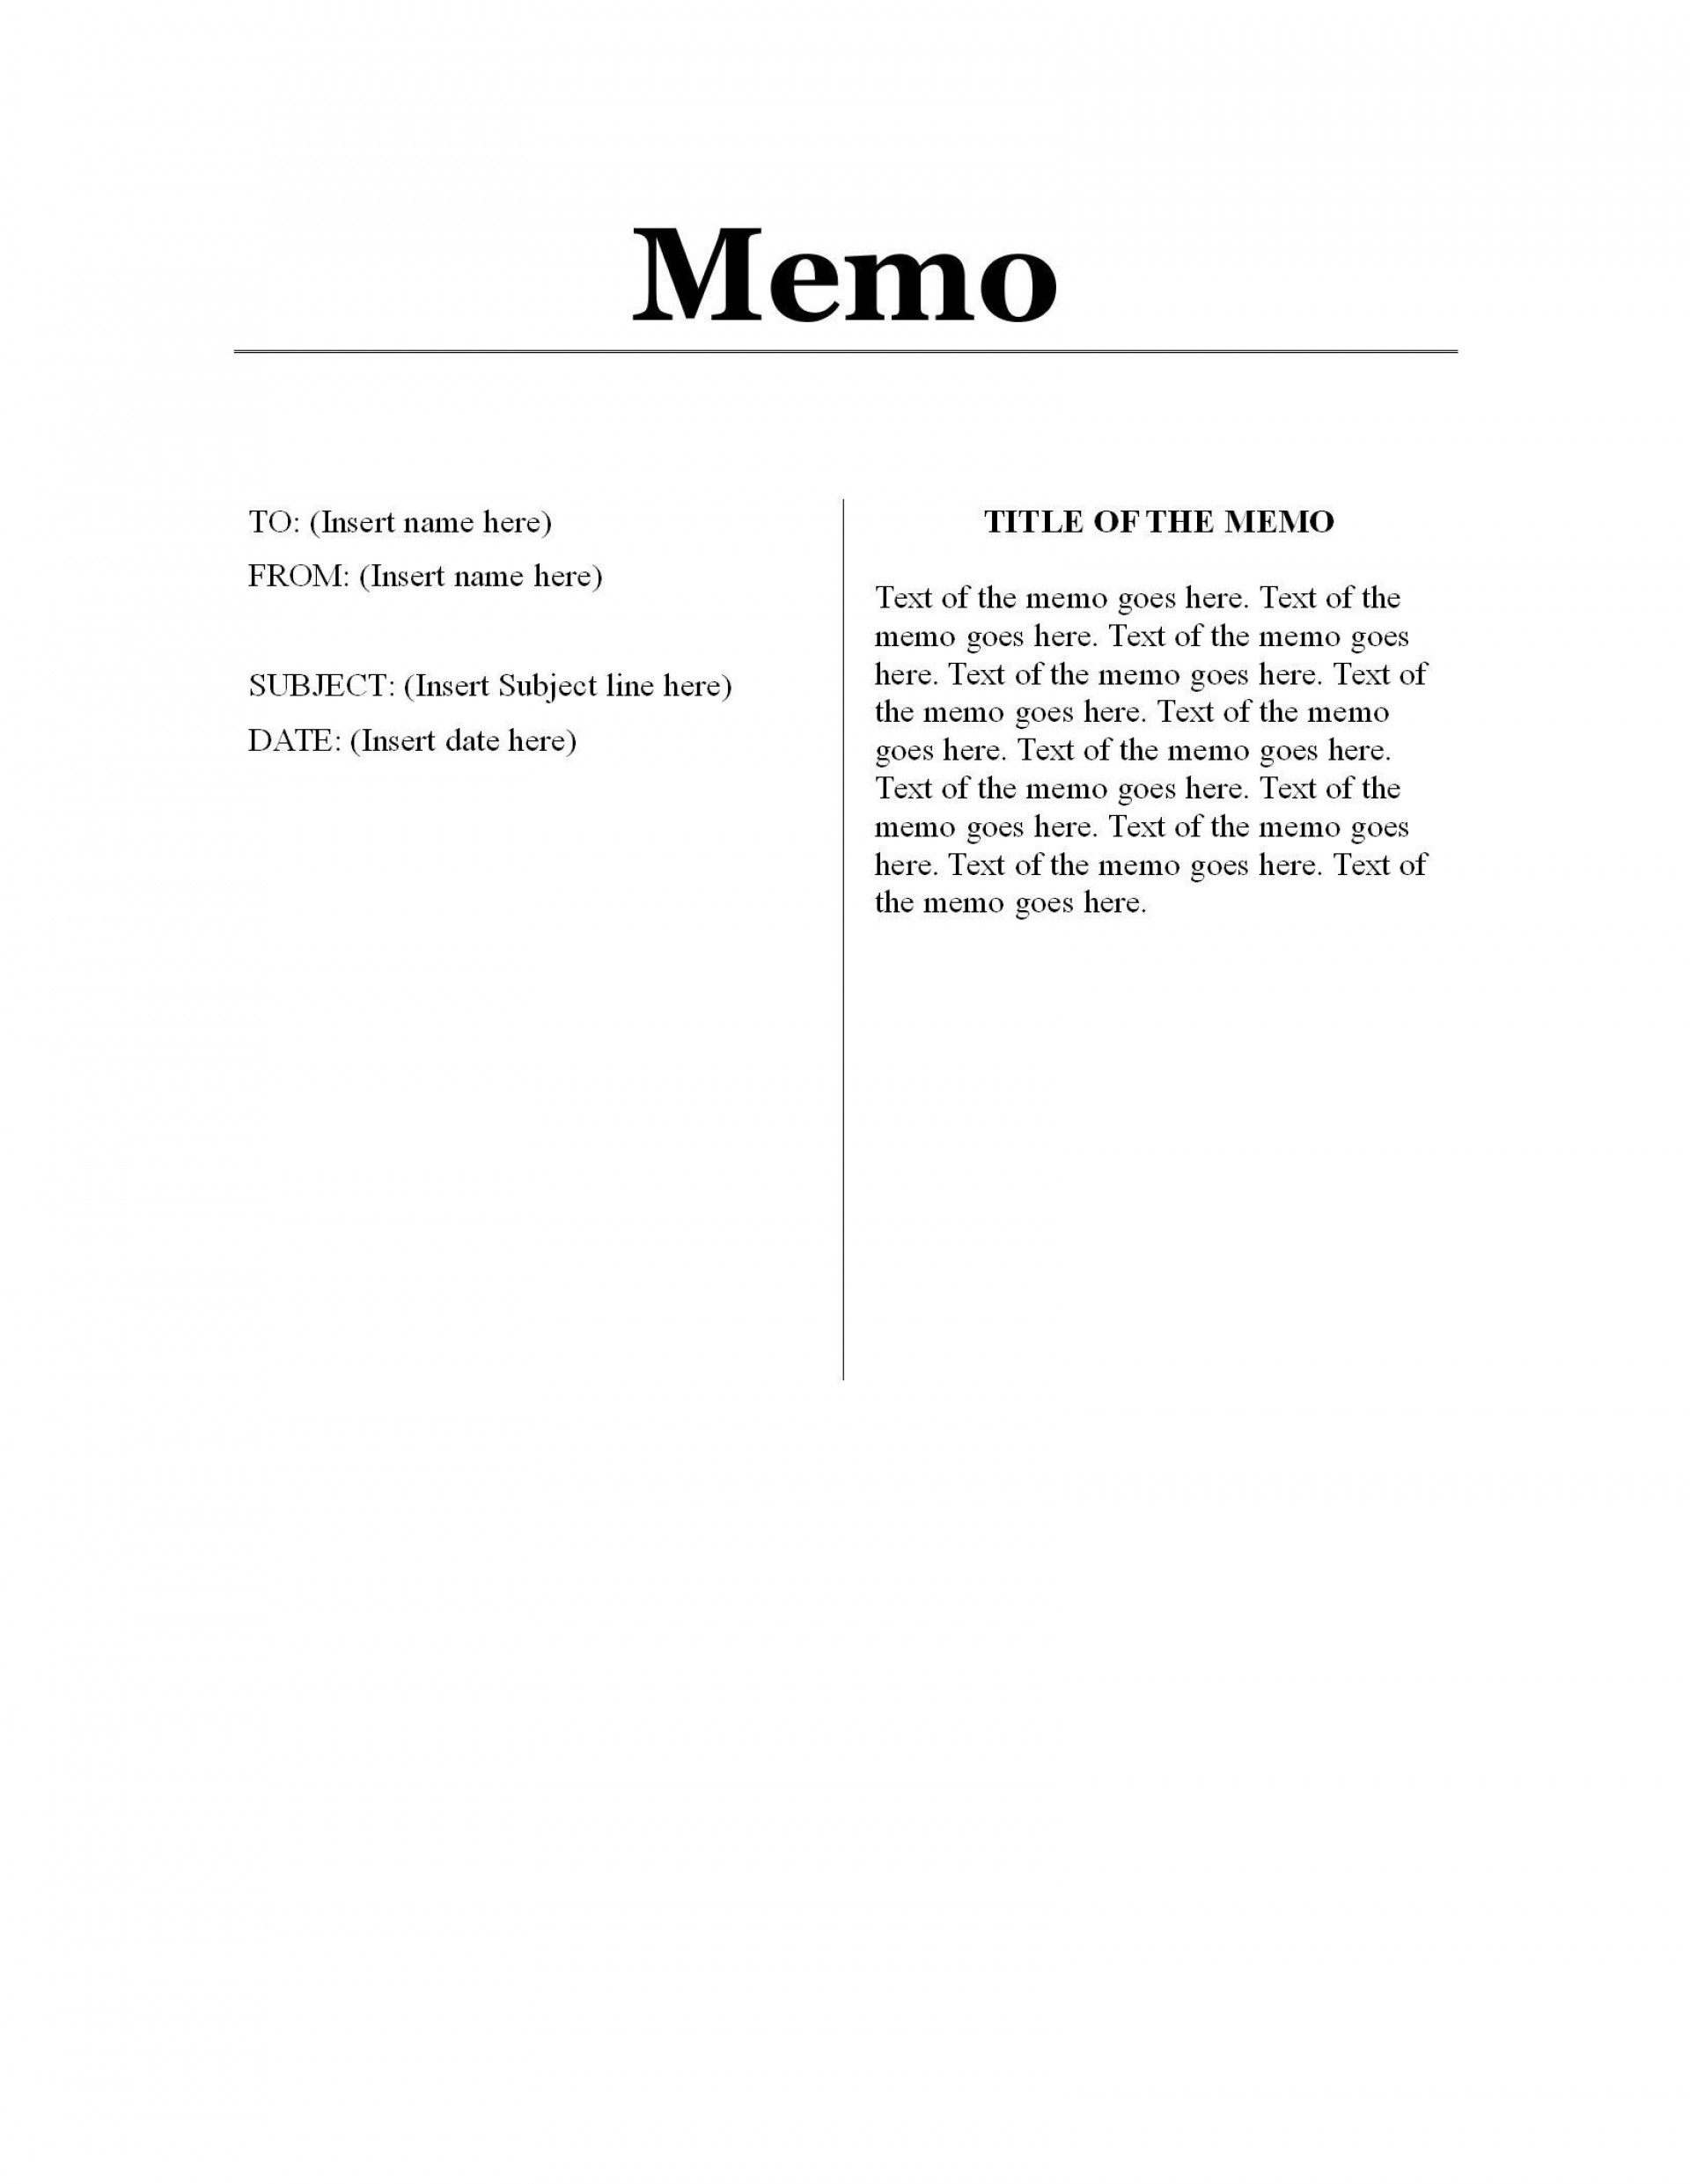 001 Simple Memo Template For Word High Resolution  Free Cash Sample 20131920